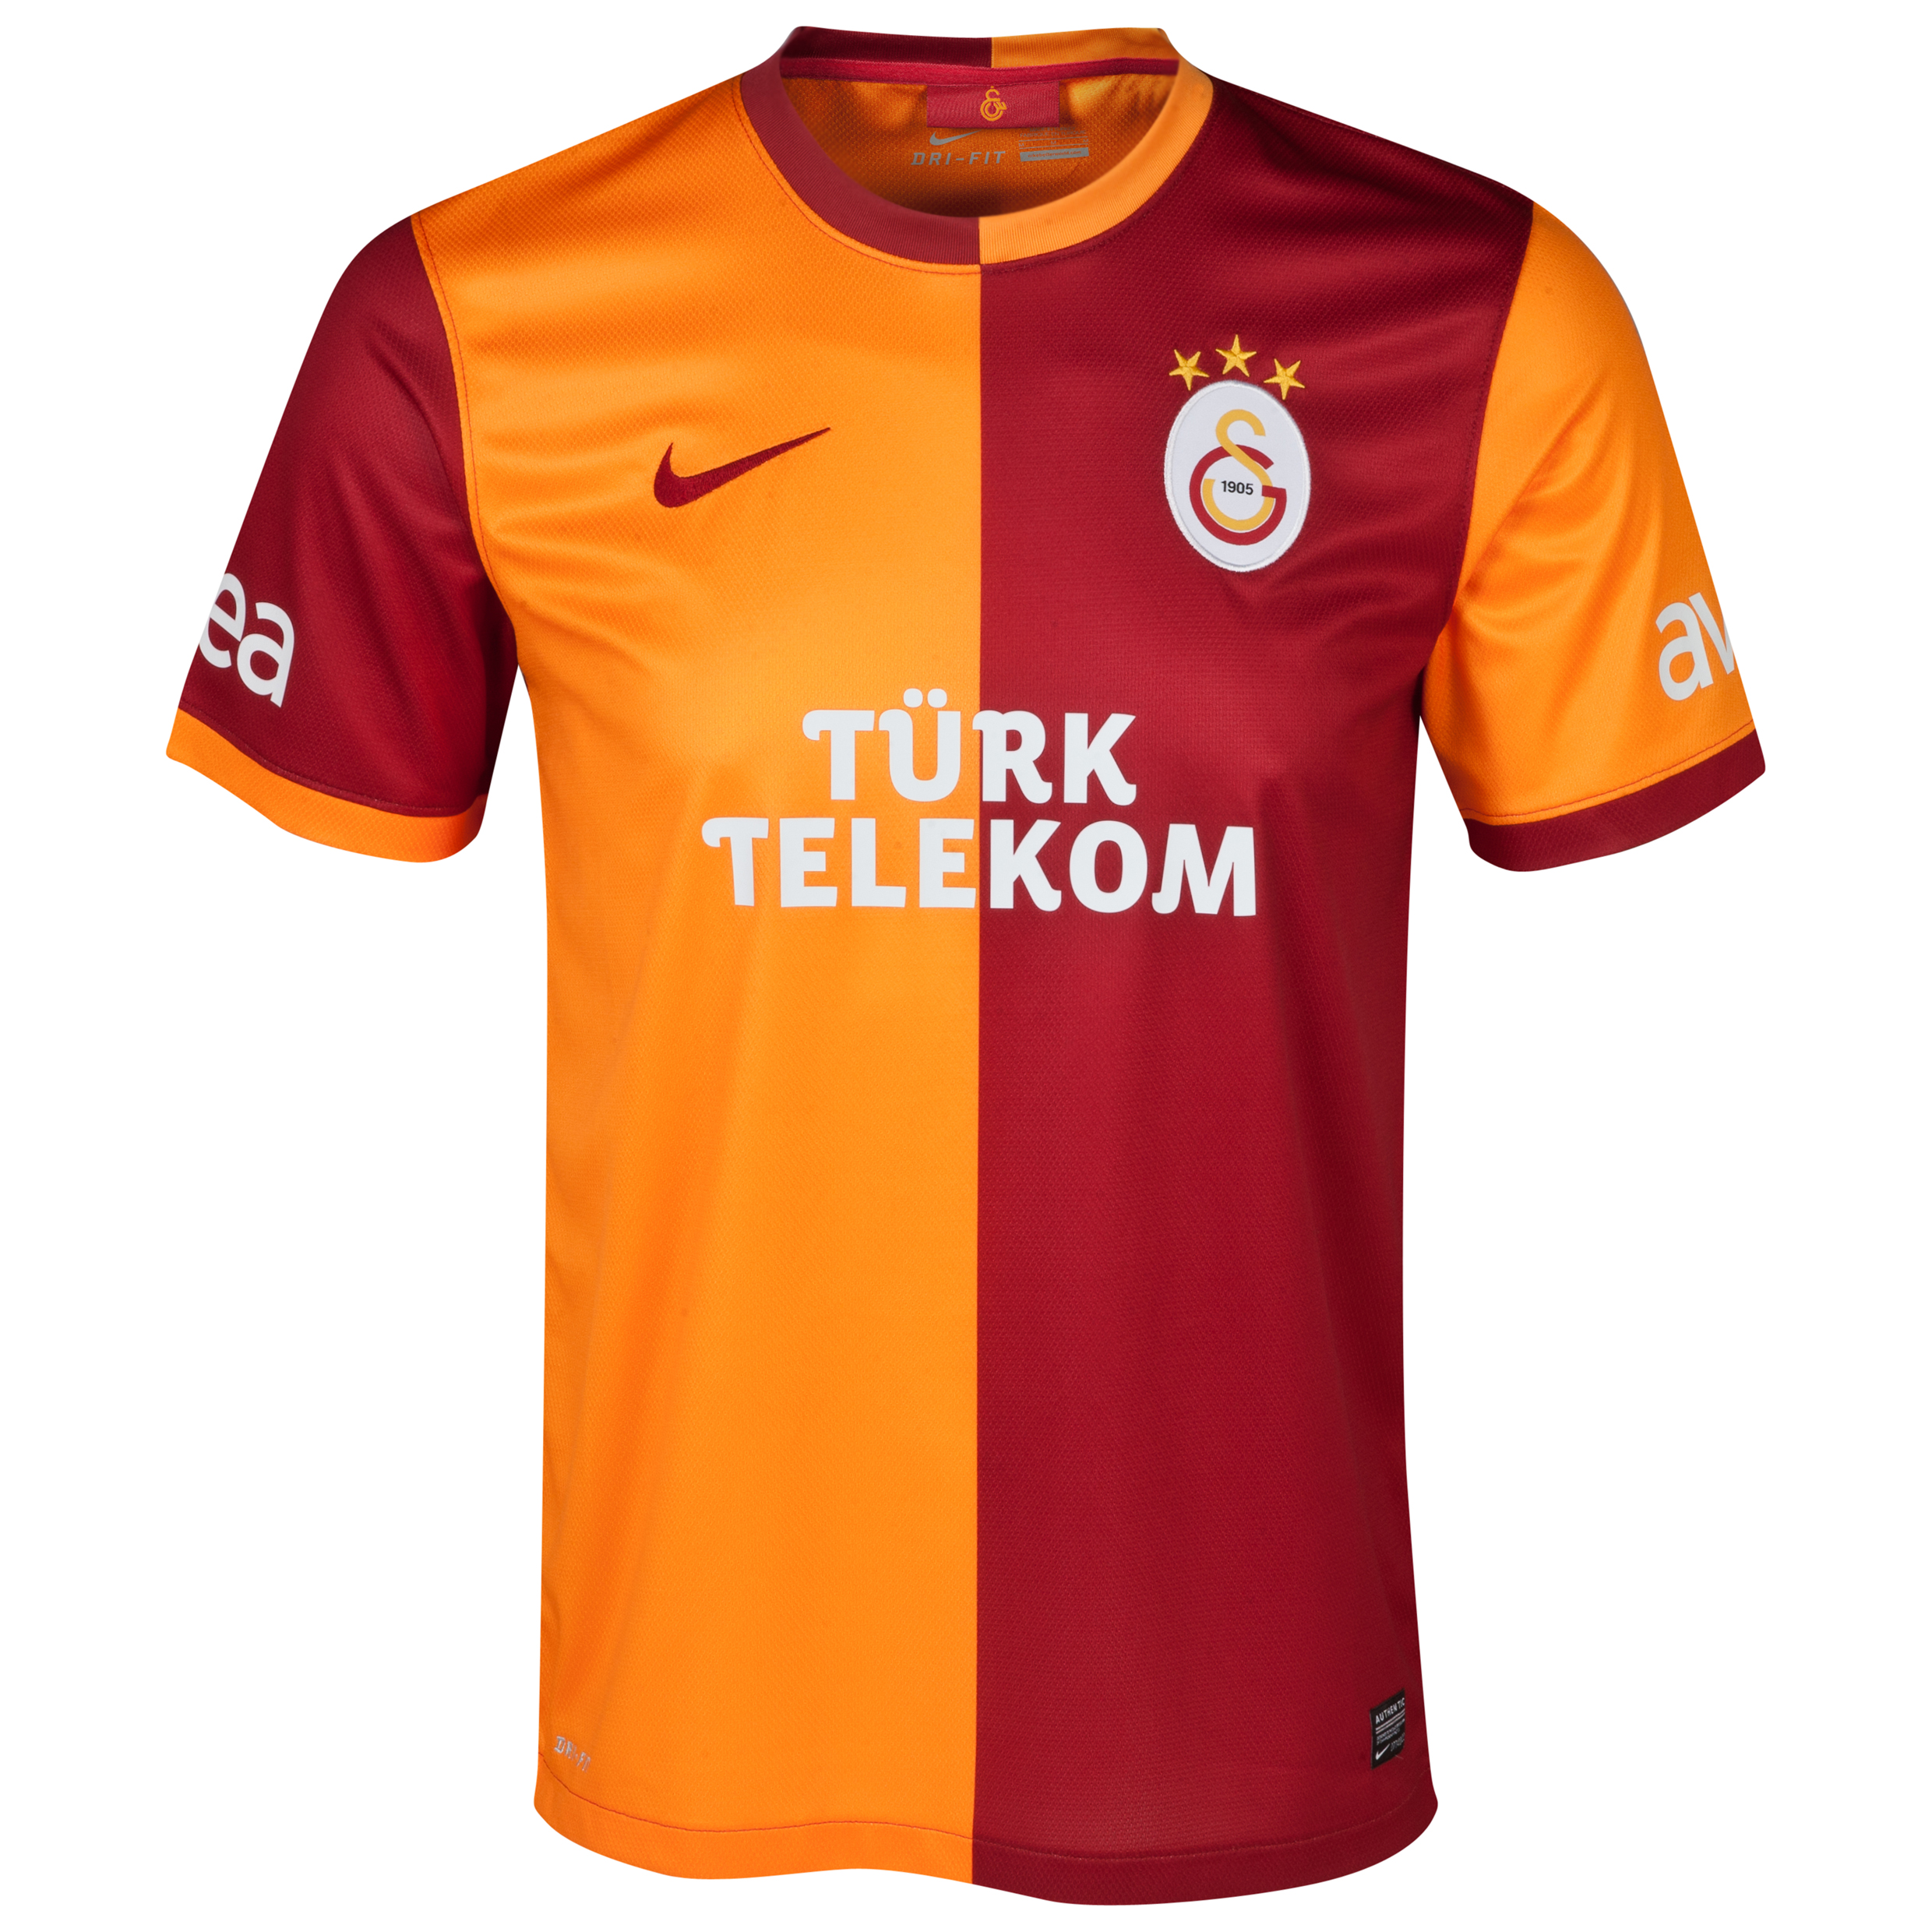 Galatasaray Home Shirt 2013/14